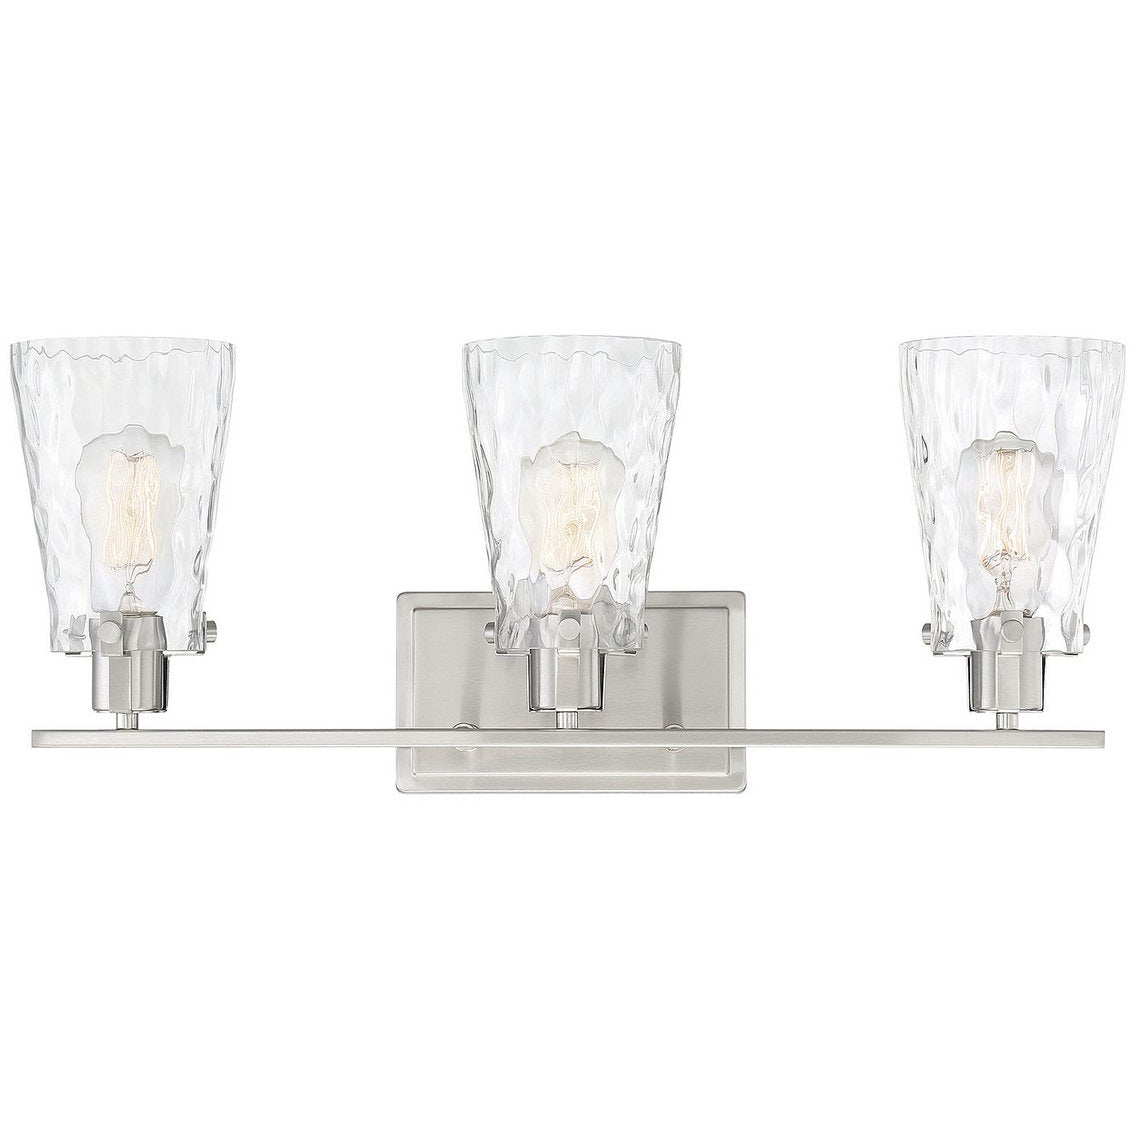 Savoy House - 8-4508-3-SN - Three Light Bath Bar - Vaughan - Satin Nickel